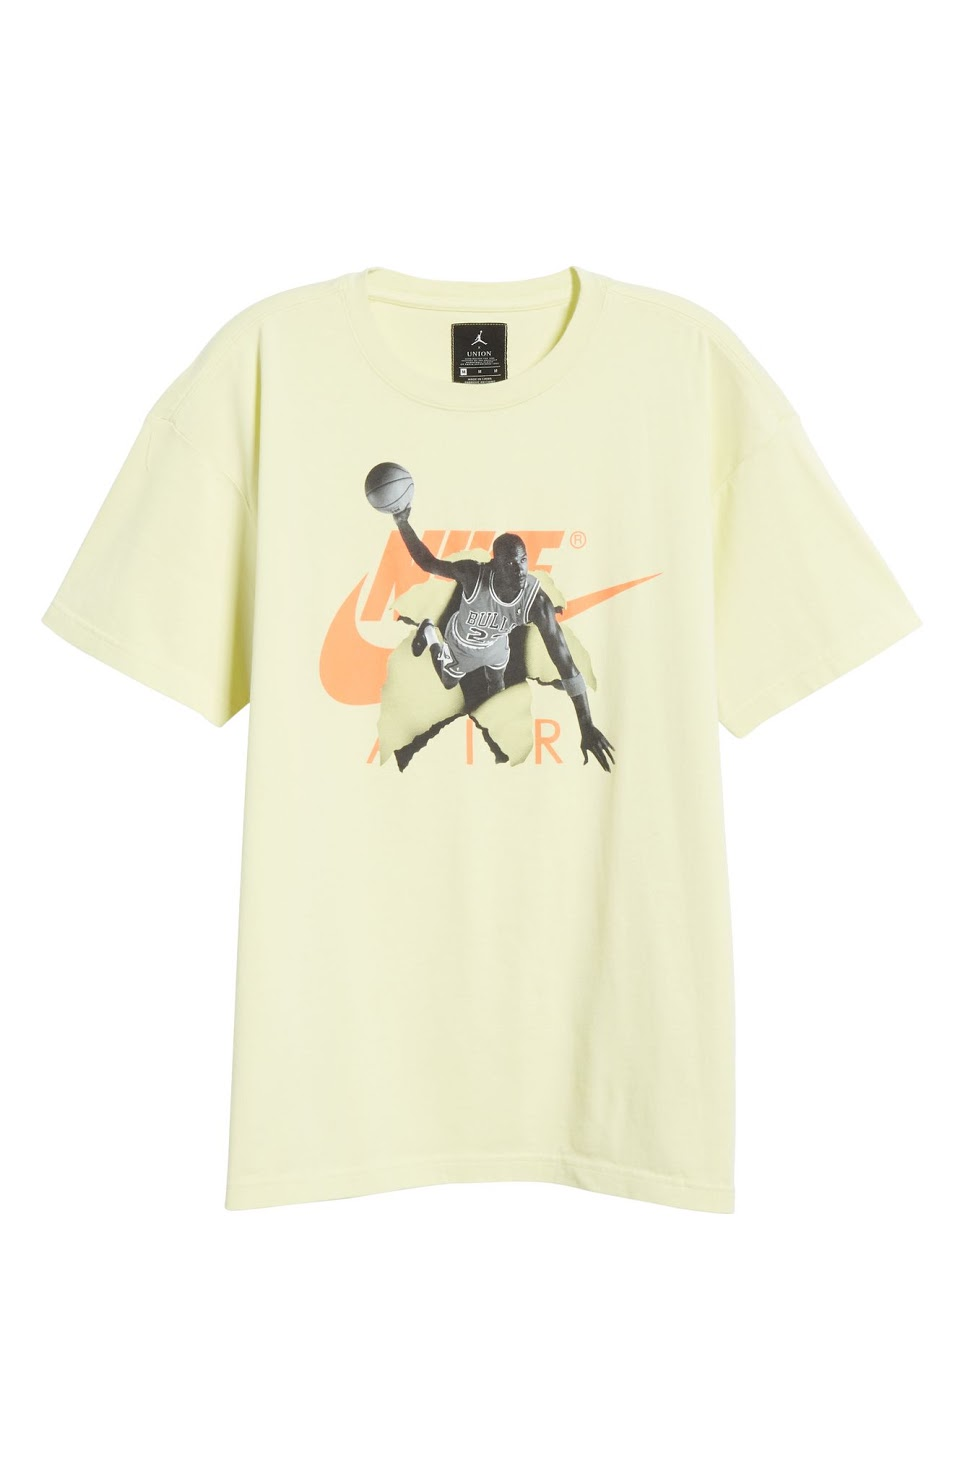 Jordan_Short Sleeve T-Shirt in Pale Yellow_$50 (2).jpeg